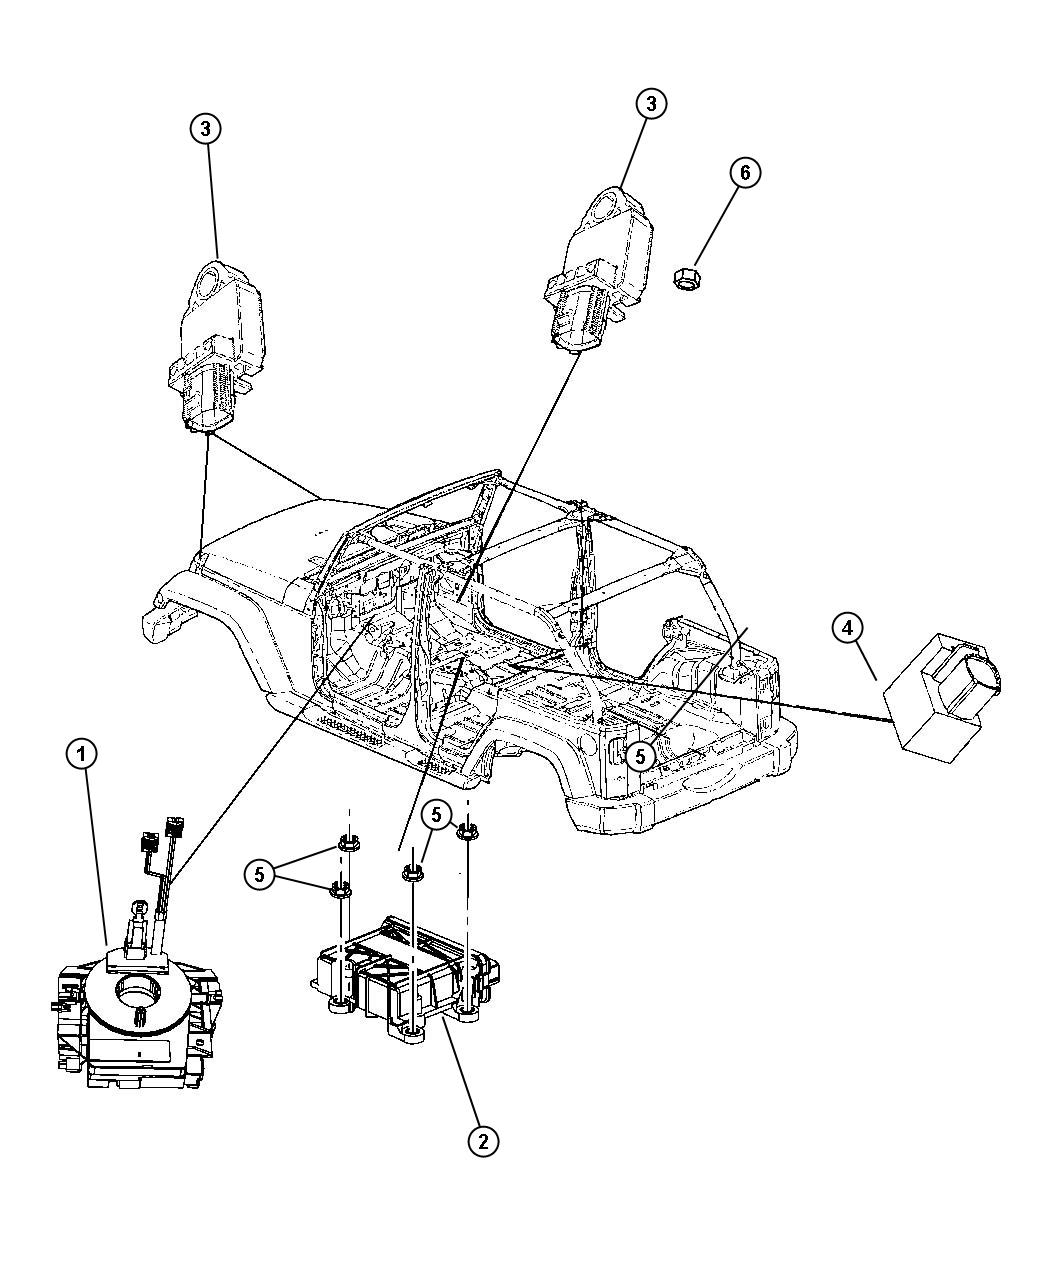 2008 Ford F150 Steering Shaft Diagram furthermore Fuse Panel For Pontiac Fiero further Traxxas T Maxx Transmission Diagram additionally Post clock Gears Diagram 252604 besides Lexus Rx300 Wiring Diagram. on ford parts clock